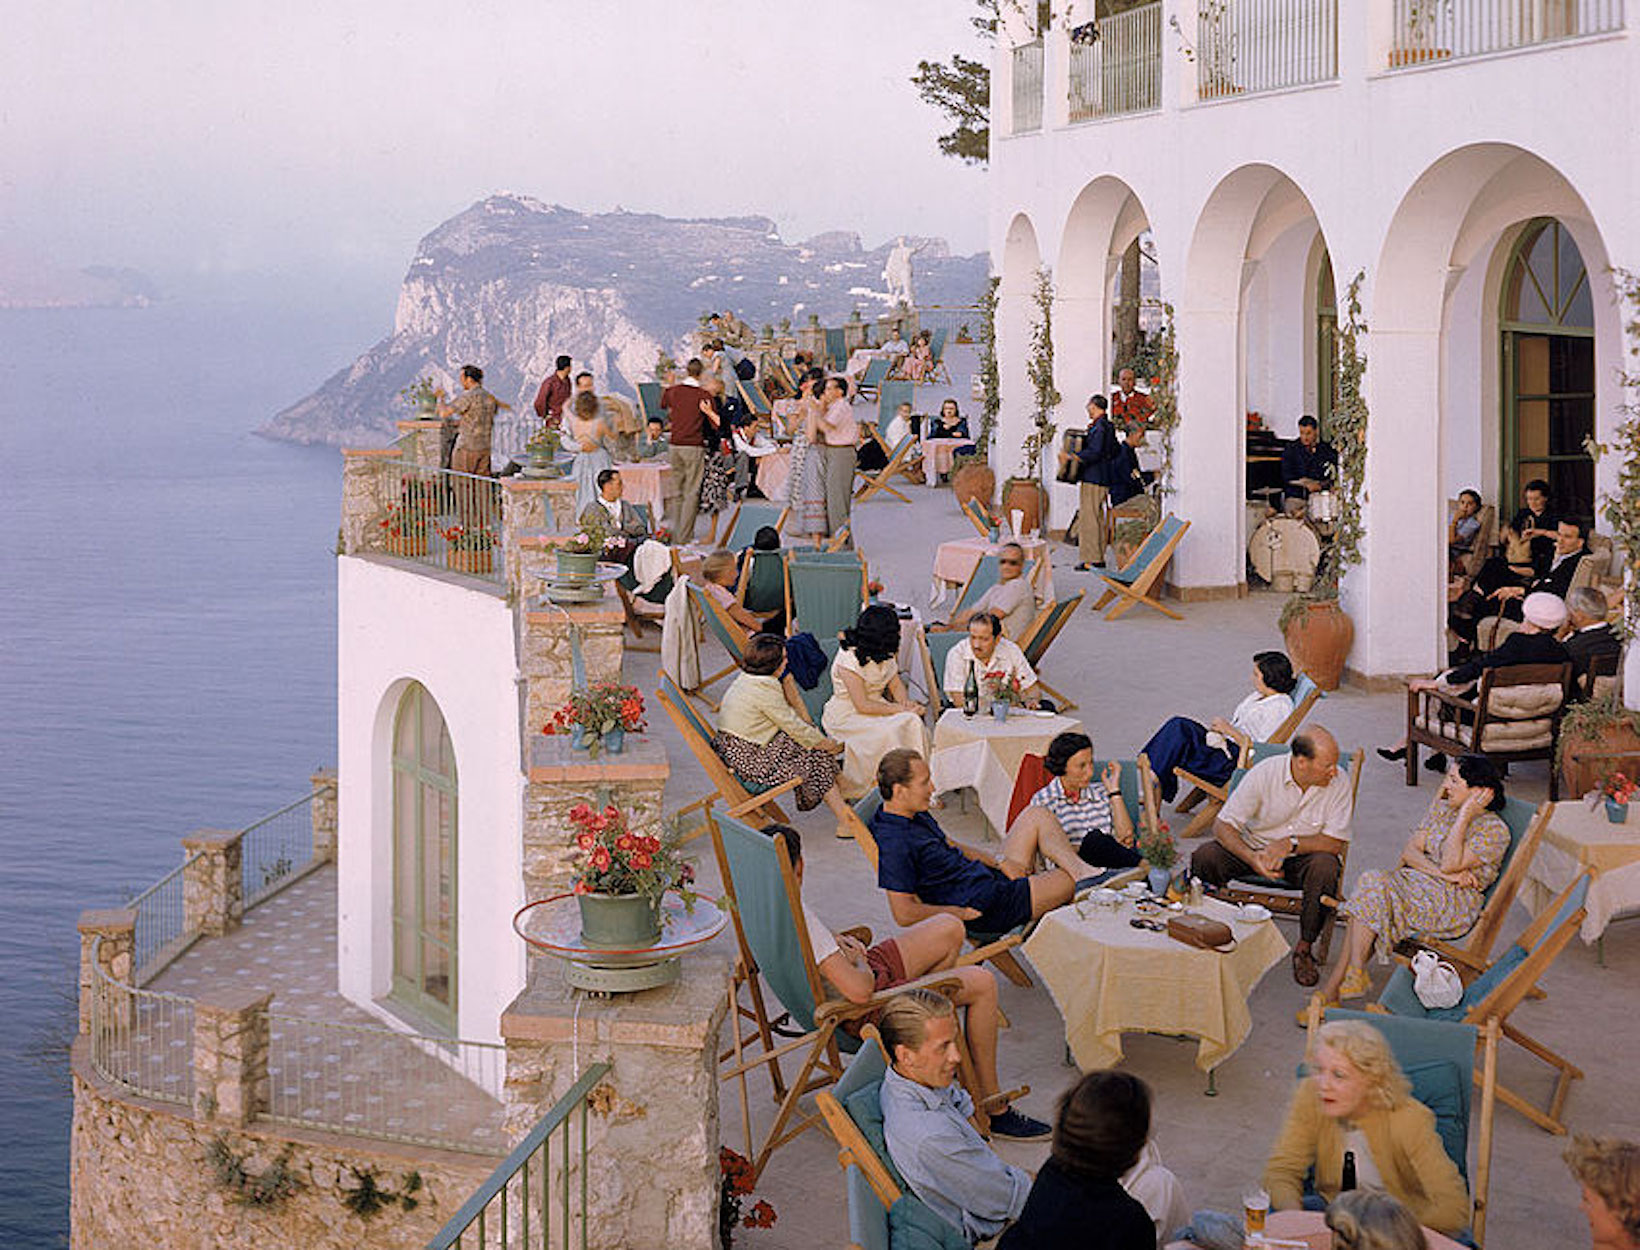 Style-Agenda-How-to-Vacation-Like-an-Italian-Prada-GettyImages-50684919.jpg